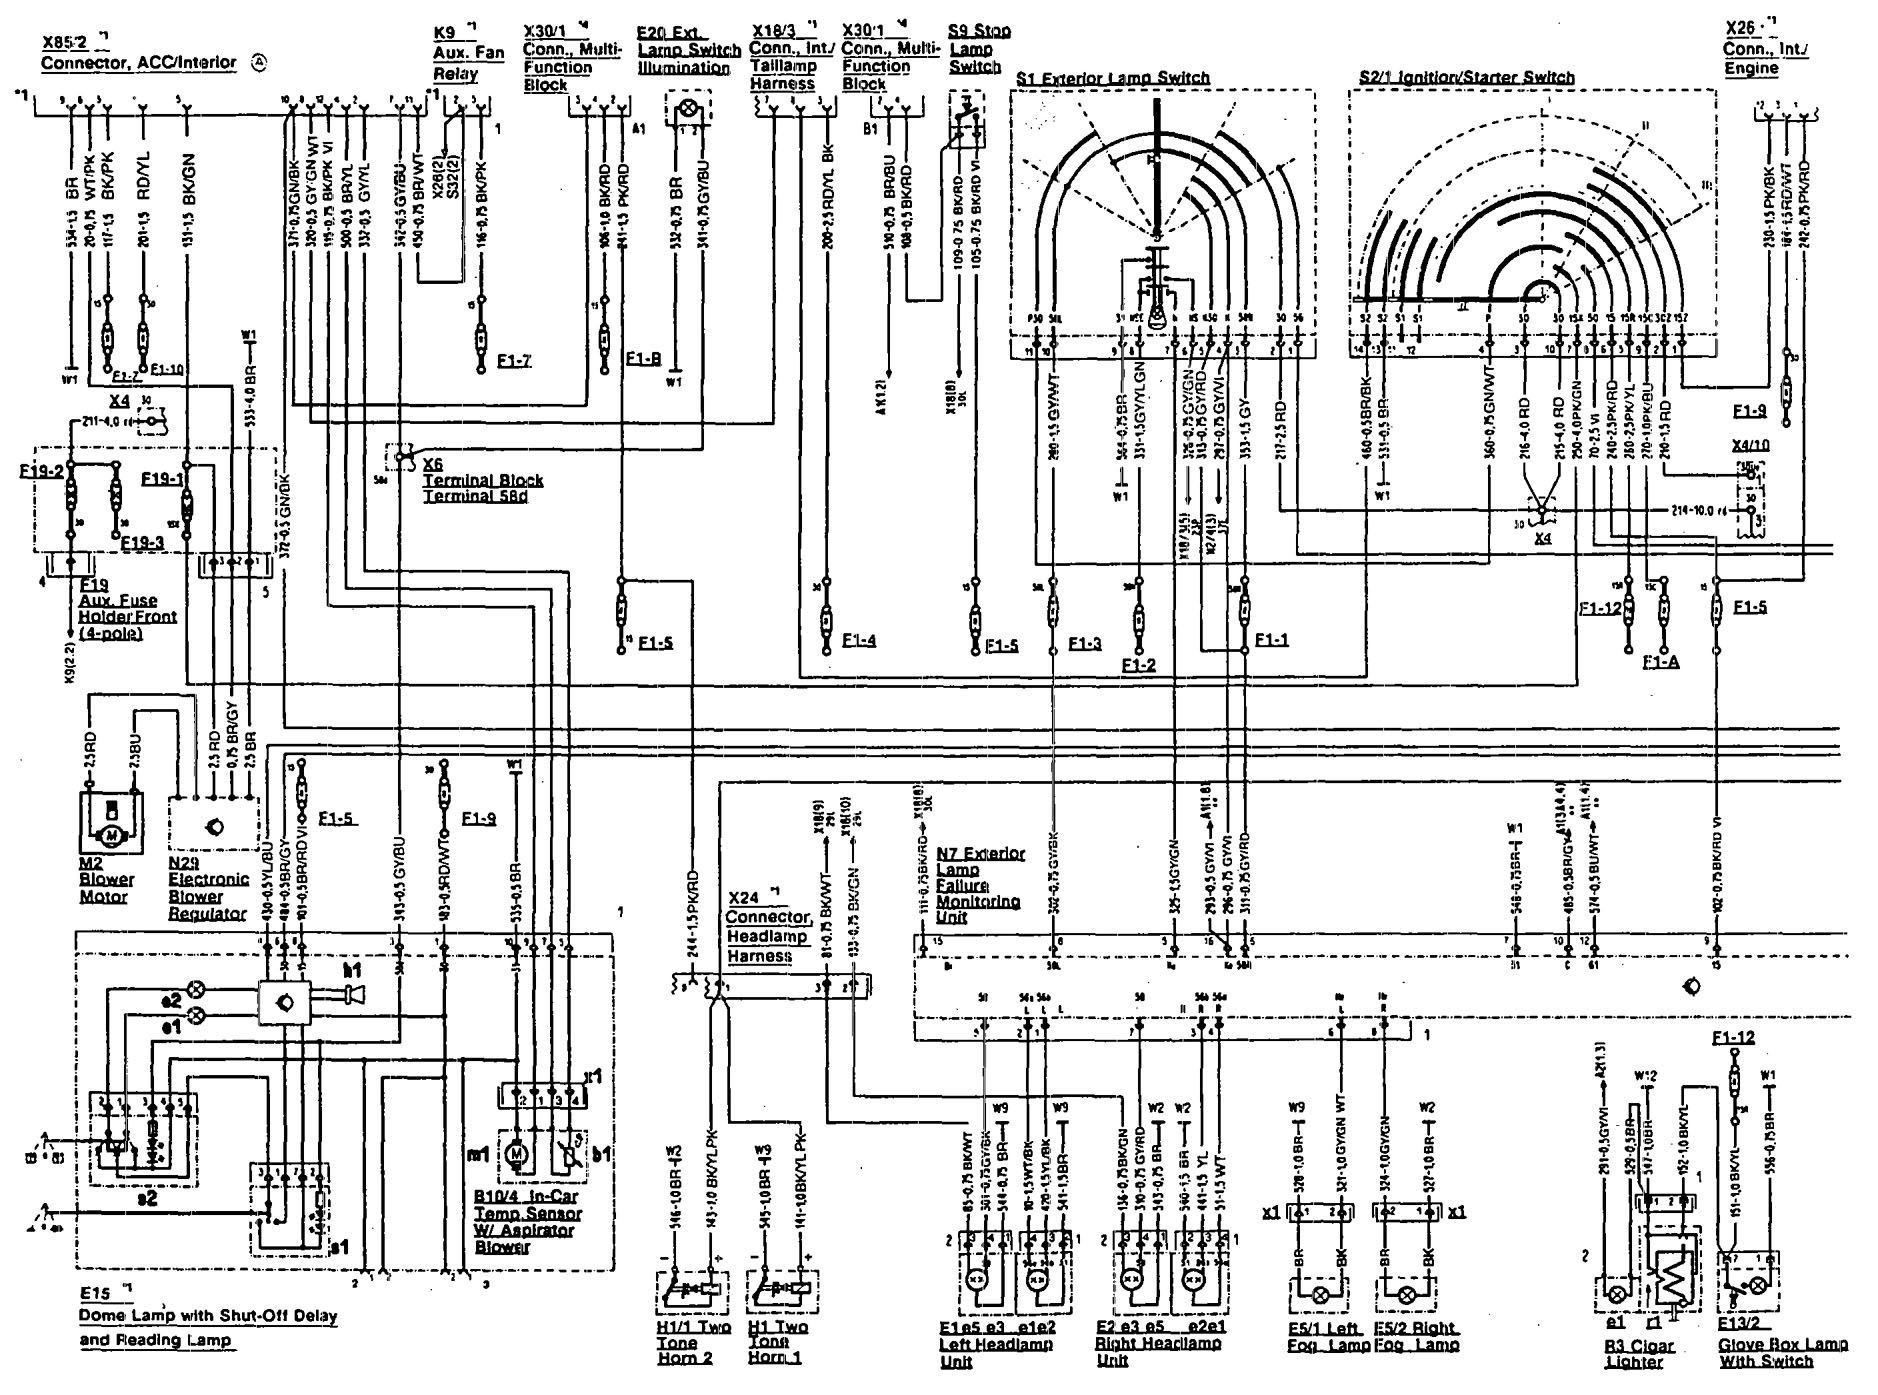 mercedes-benz 300sl  1993  - wiring diagrams